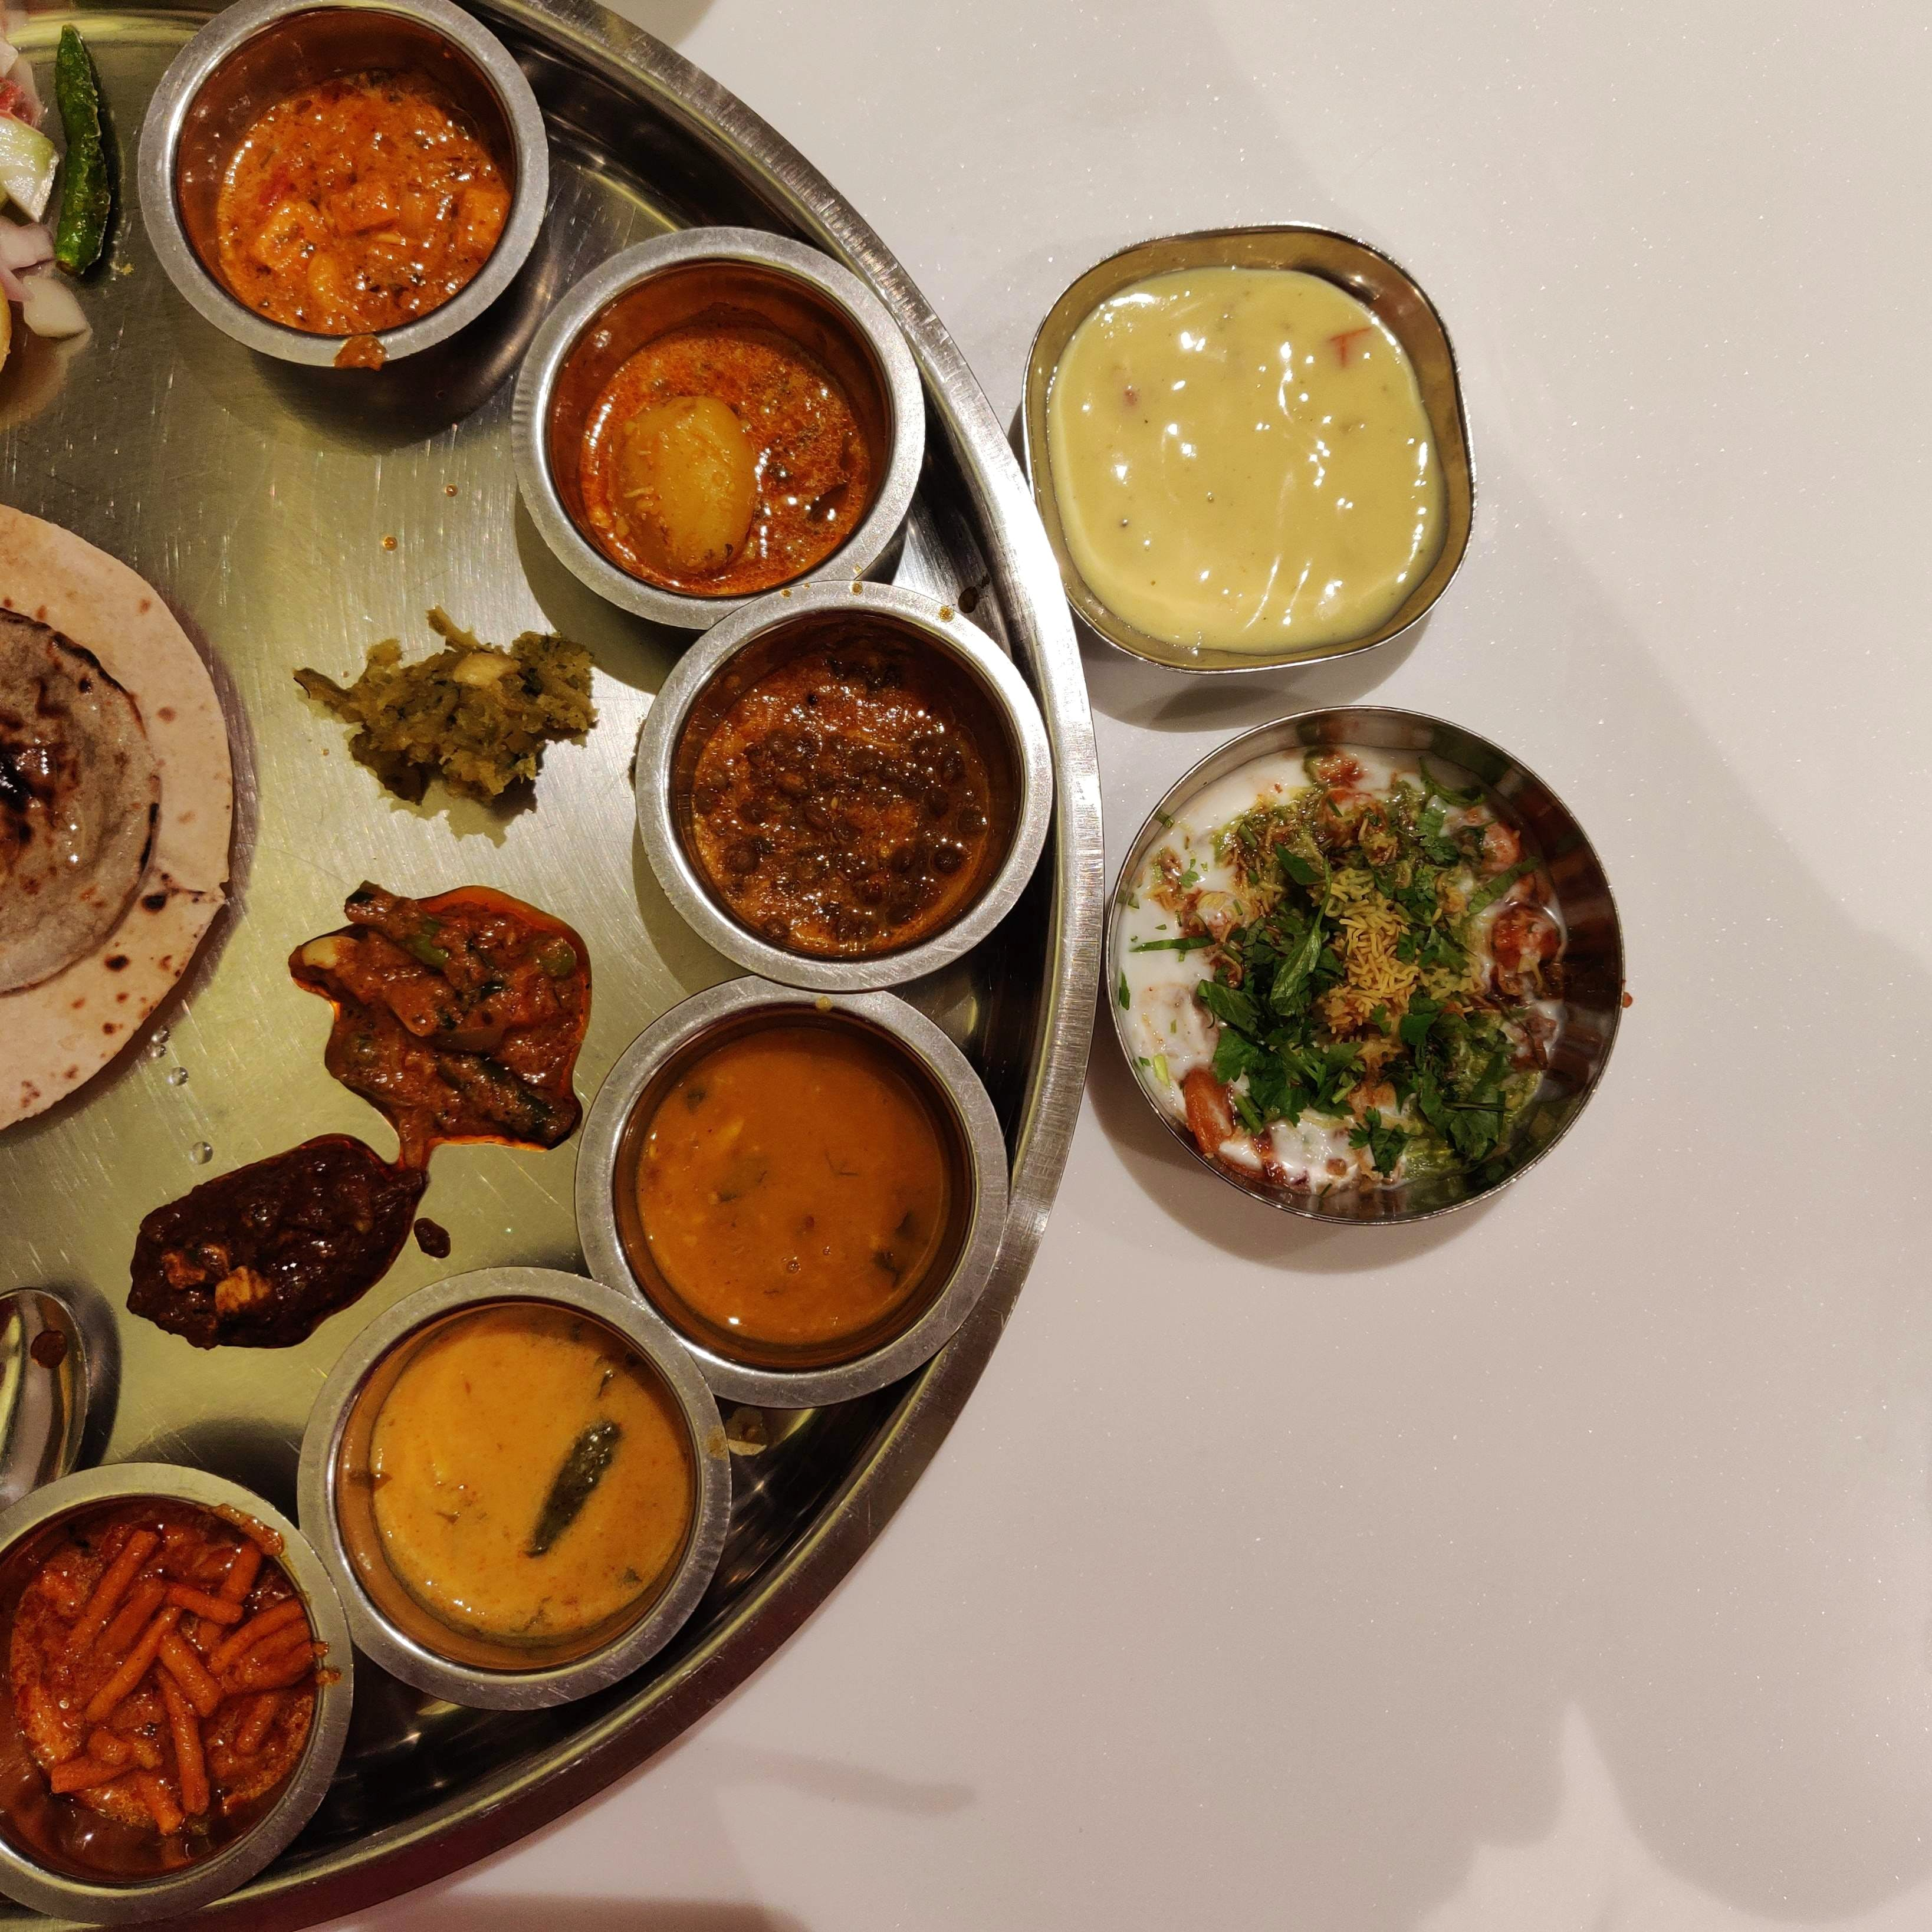 Dish,Food,Cuisine,Meal,Ingredient,Lunch,Indian cuisine,Vegetarian food,Curry,Produce